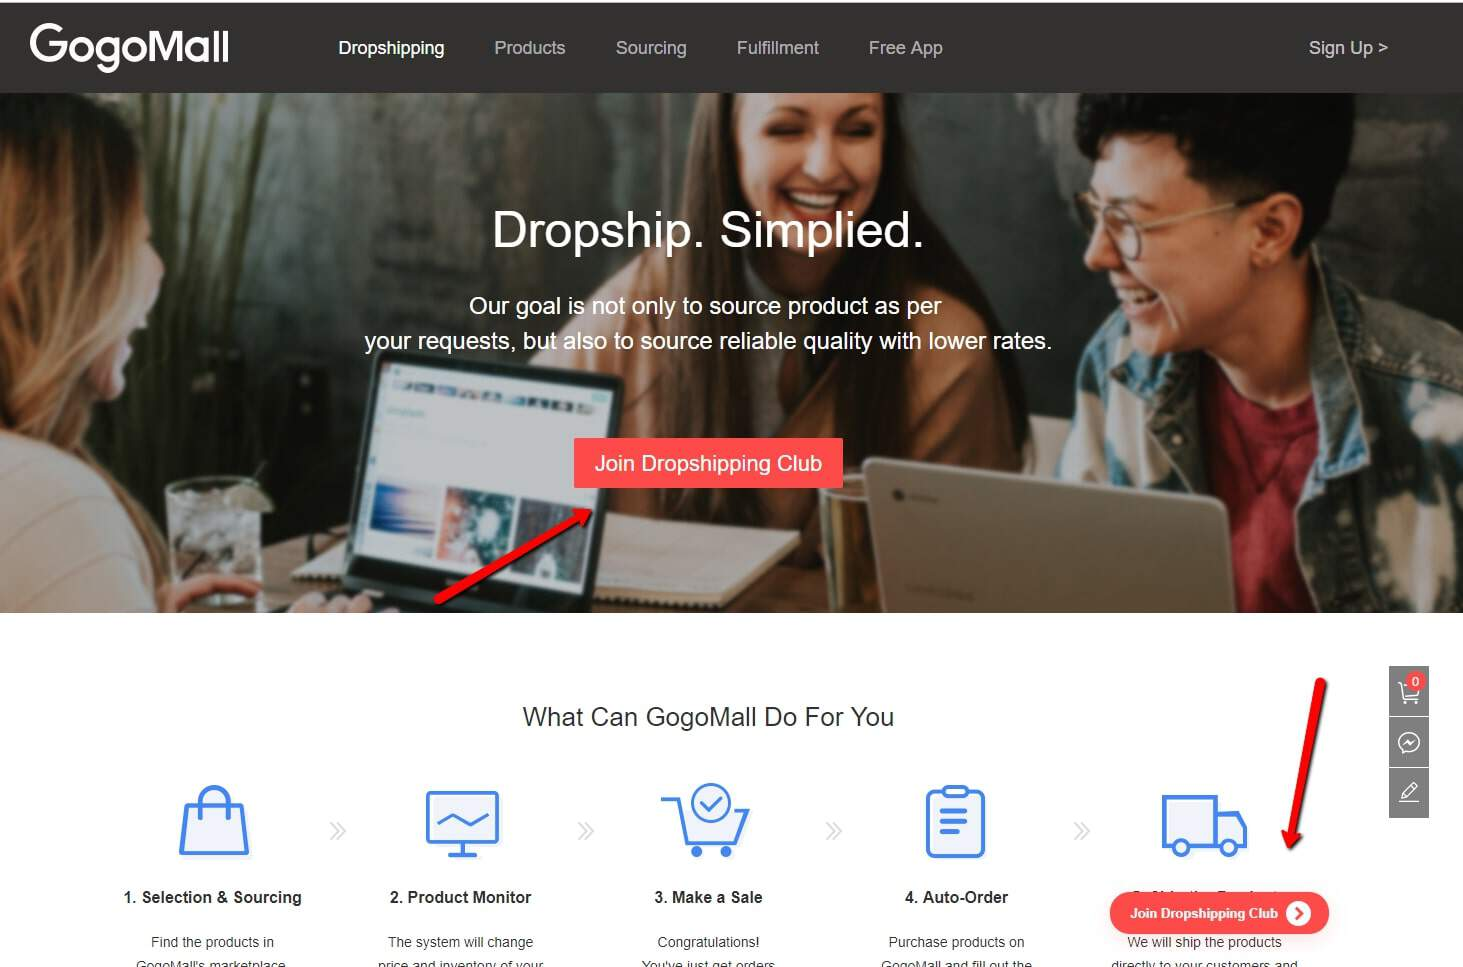 Drop Shipping Suppliers Guide: How to Dropship from GogoMall